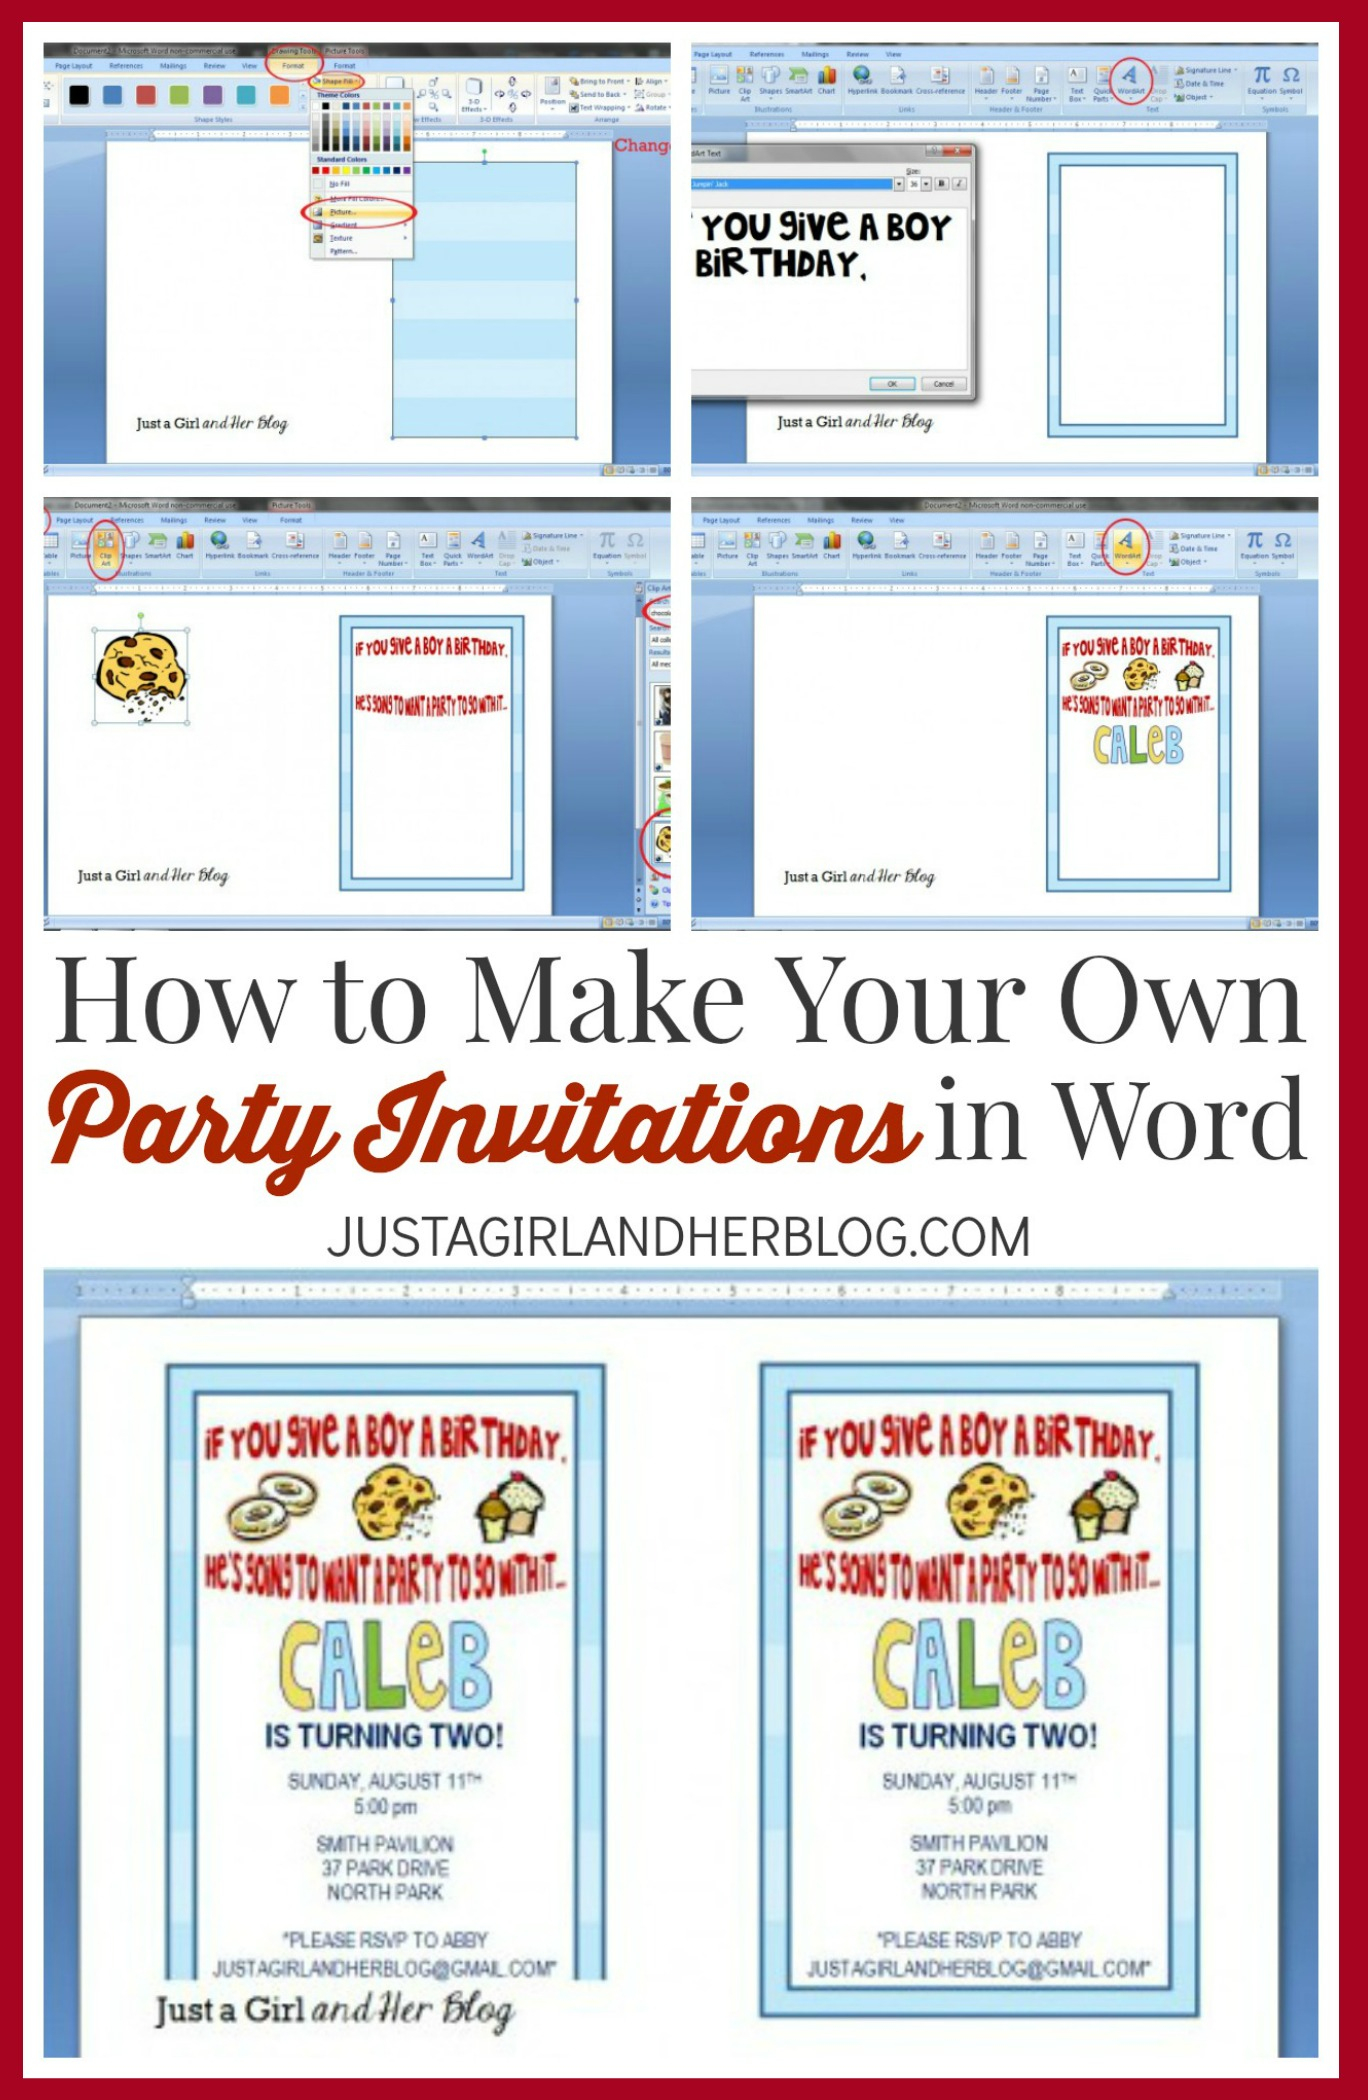 How To Make Your Own Party Invitations - Just A Girl And Her Blog - Play Date Invitations Free Printable